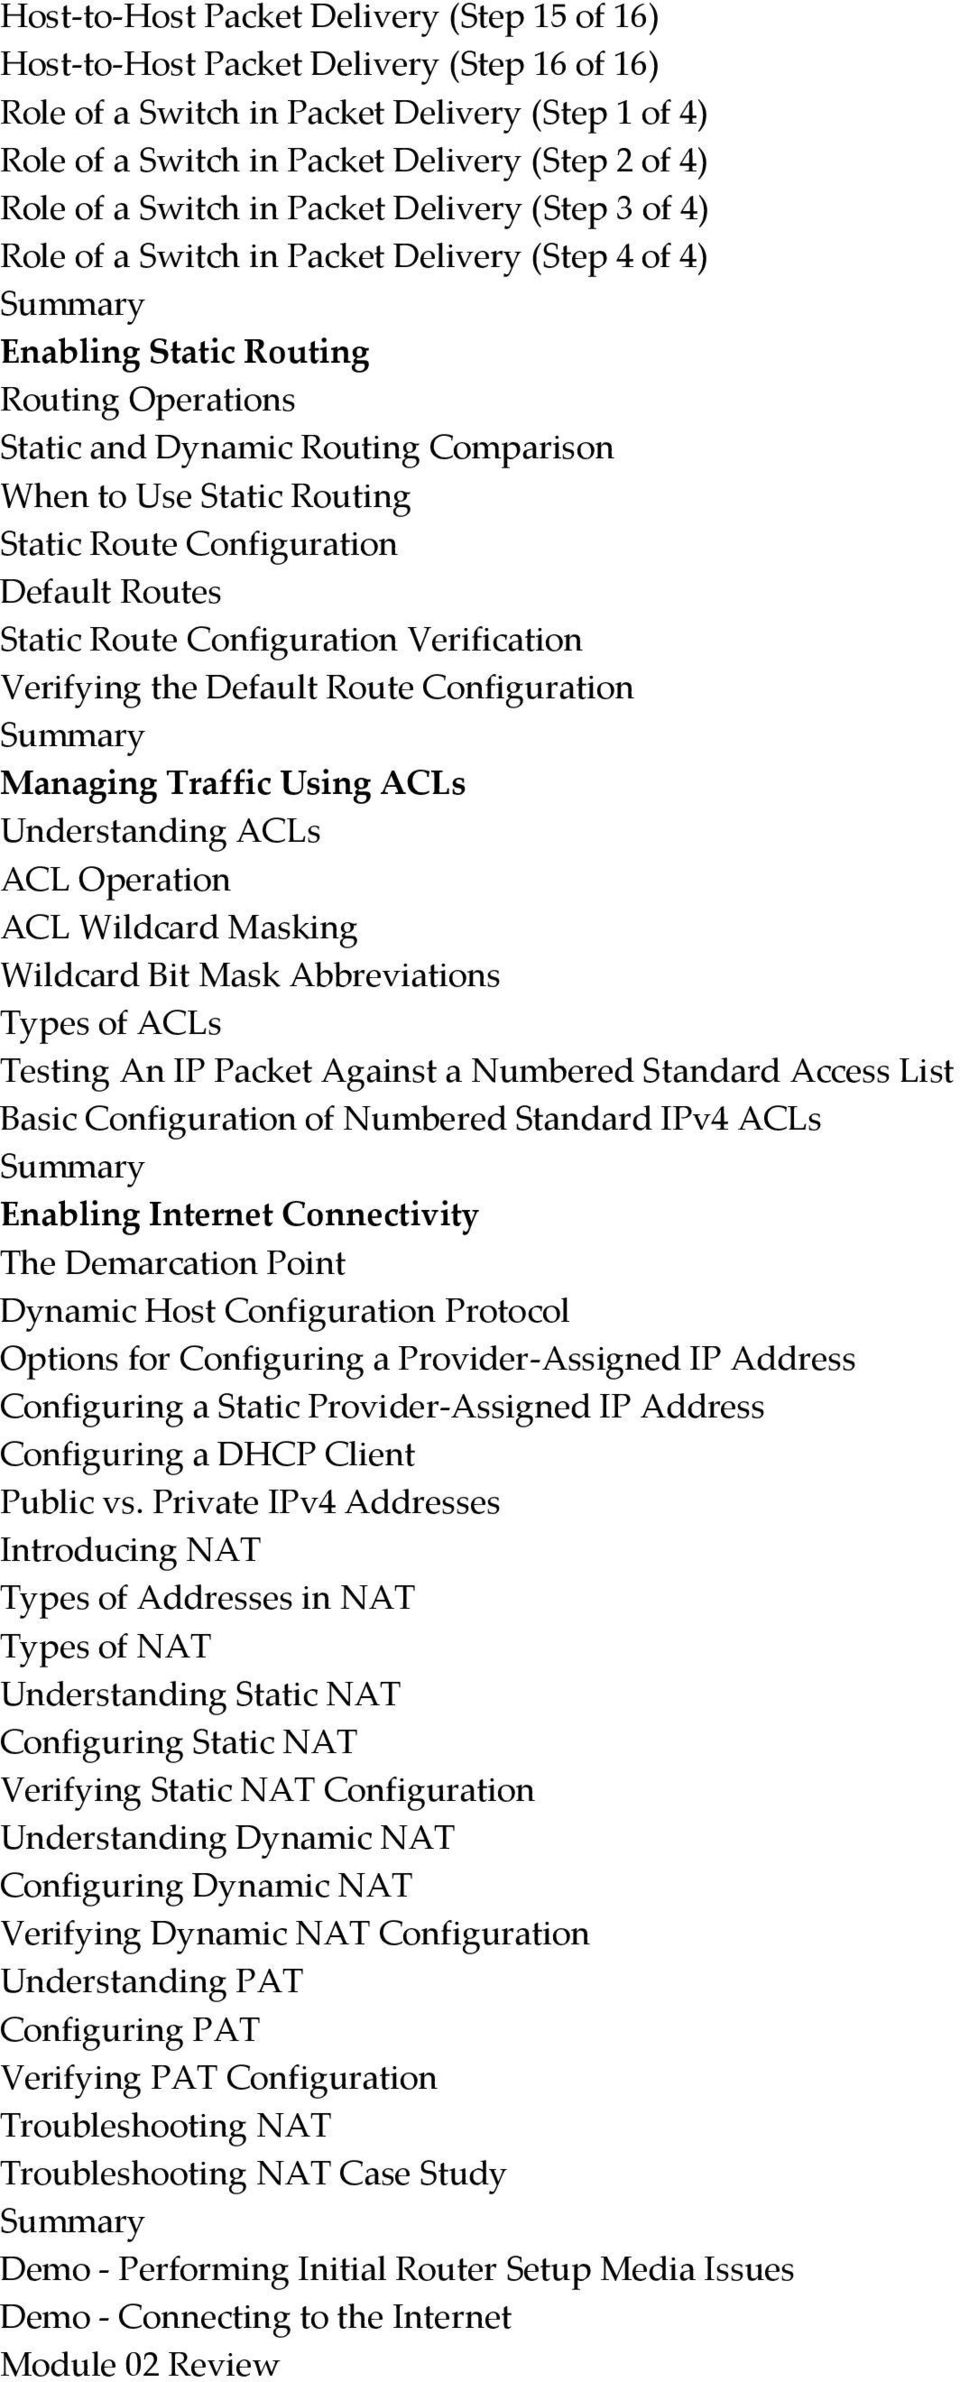 Static Route Configuration Default Routes Static Route Configuration Verification Verifying the Default Route Configuration Managing Traffic Using ACLs Understanding ACLs ACL Operation ACL Wildcard